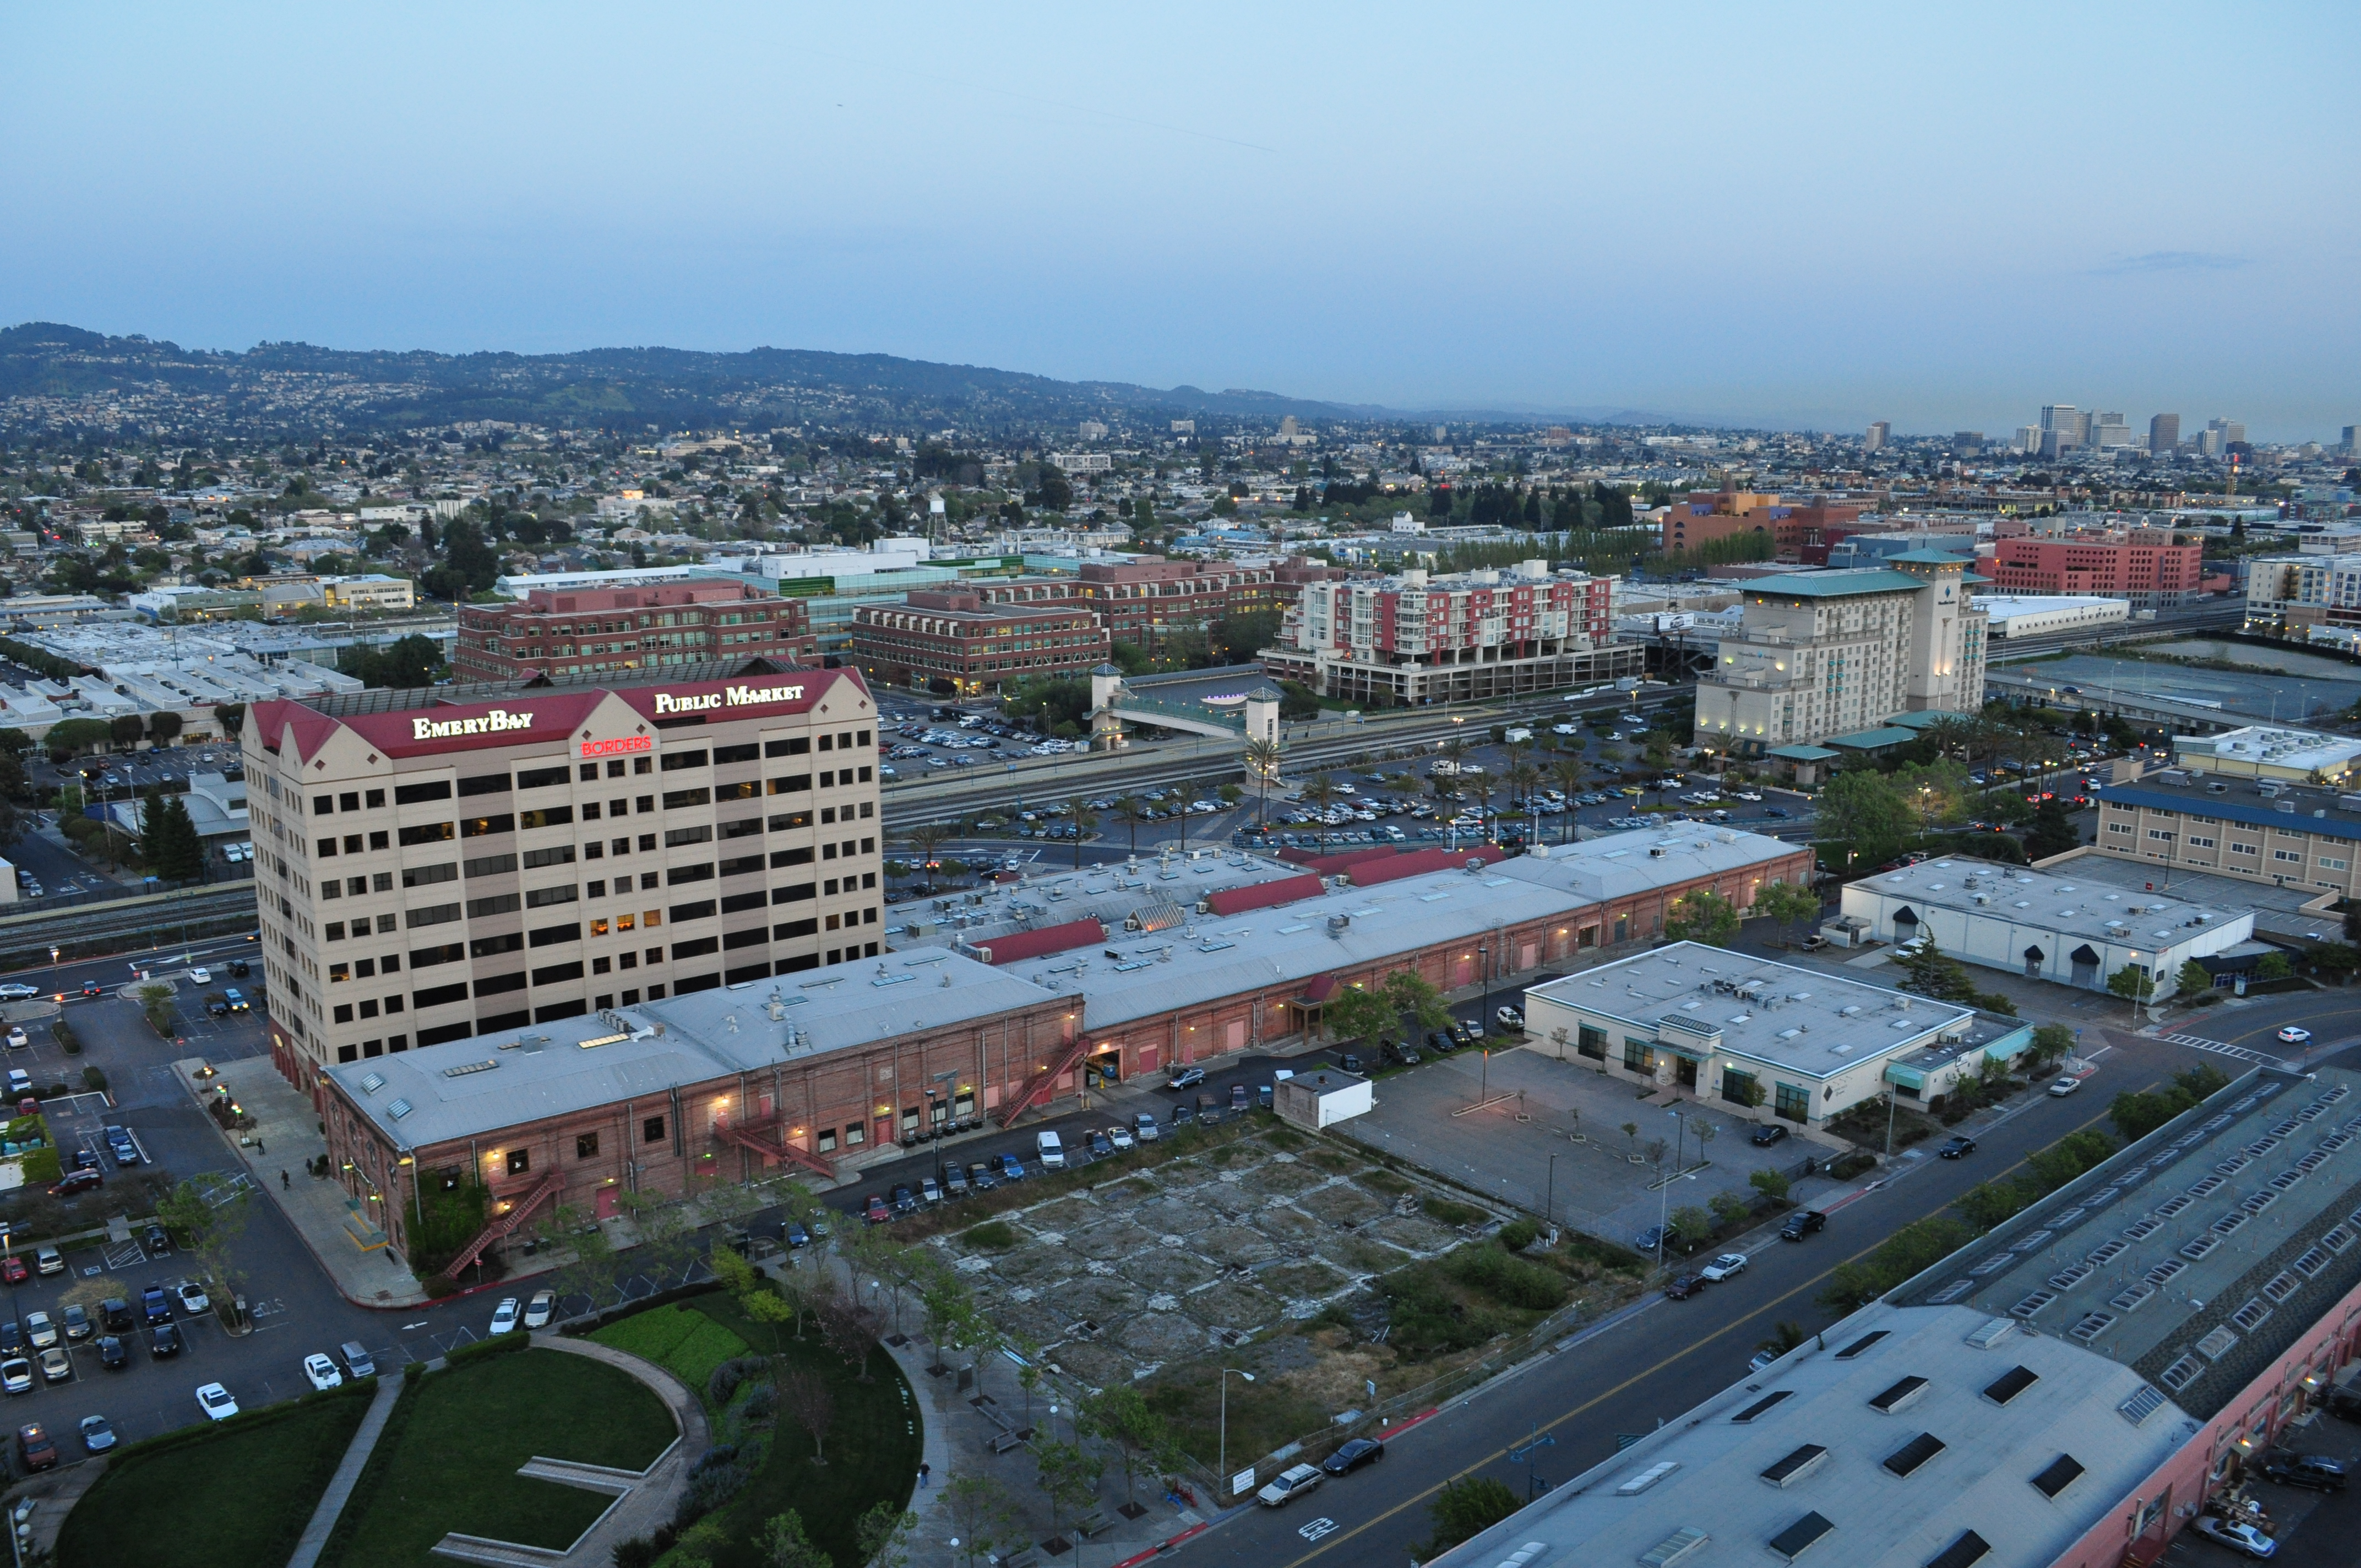 As of October , the average apartment rent in Emeryville, CA is $2, for a studio, $2, for one bedroom, $3, for two bedrooms, and $4, for three bedrooms. Apartment rent in Emeryville has increased by % in the past year.